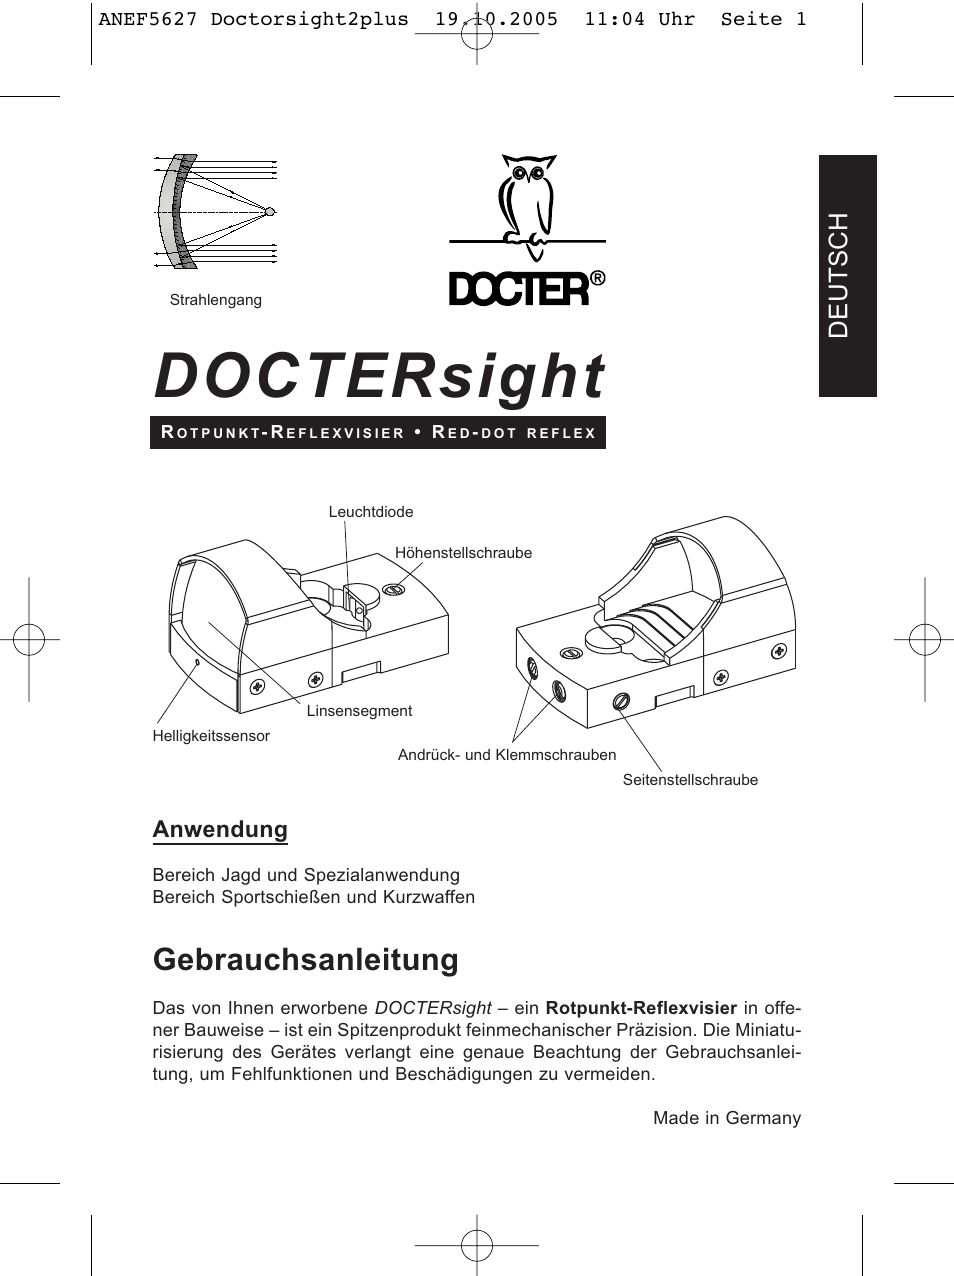 DOCTER DOCTER®sight II plus User Manual | 32 pages